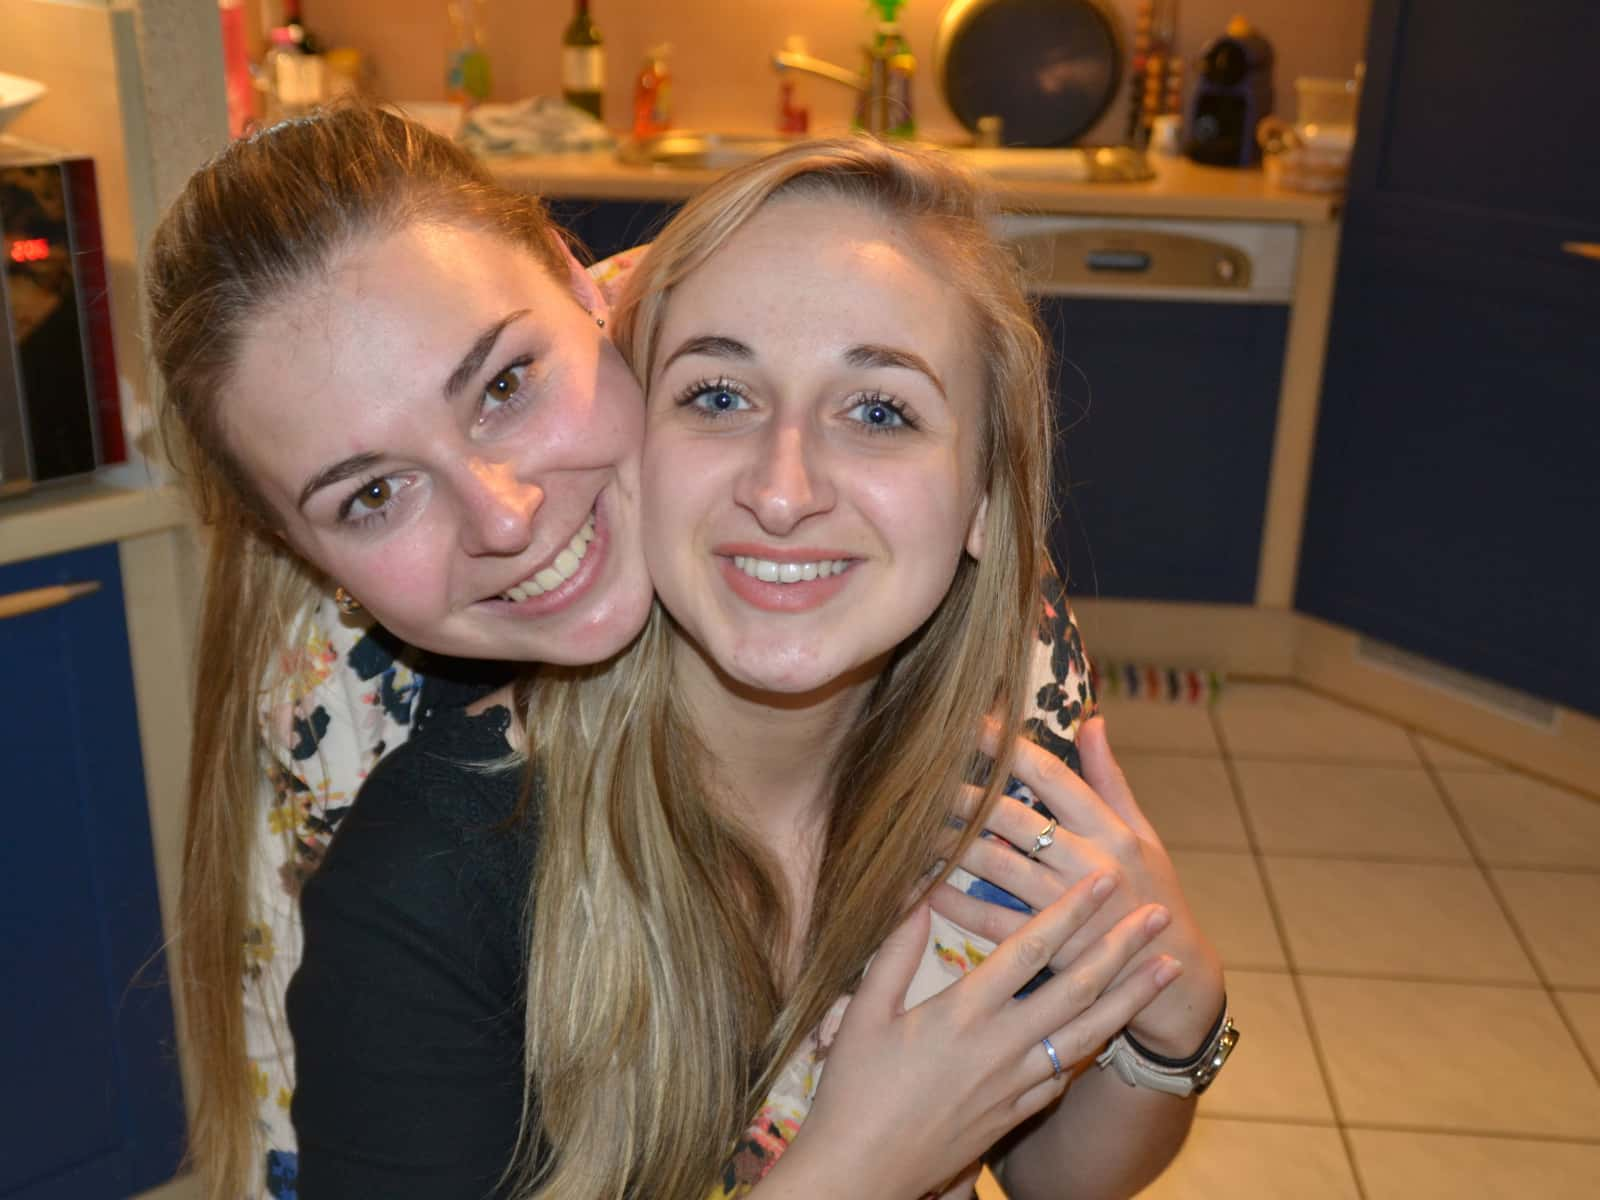 Ambre & Pauline from Caen, France